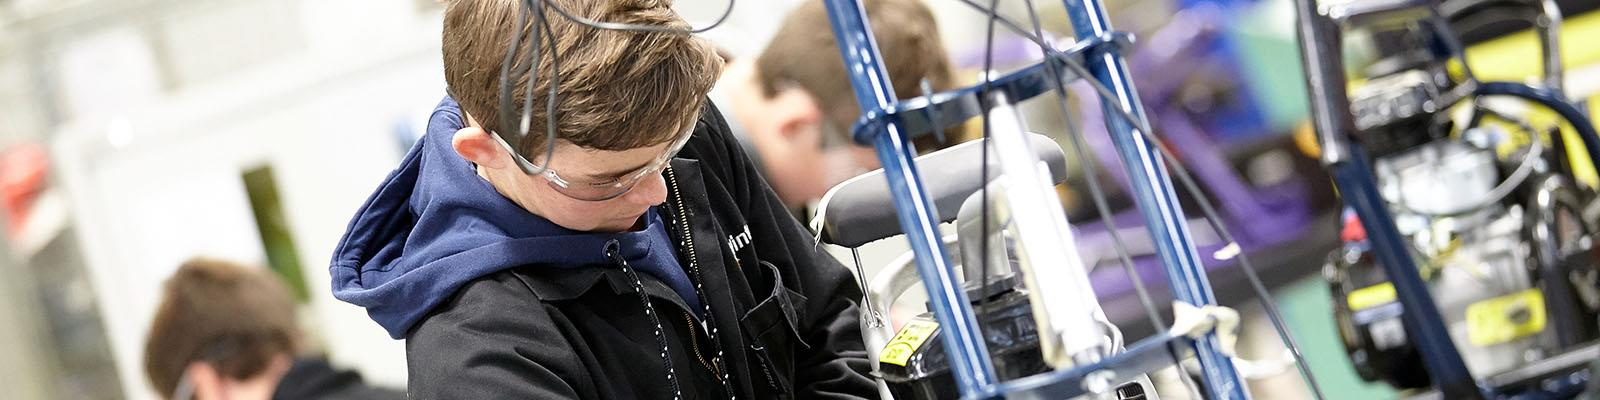 Waikato Trades Academy student in the workshop at Wintec